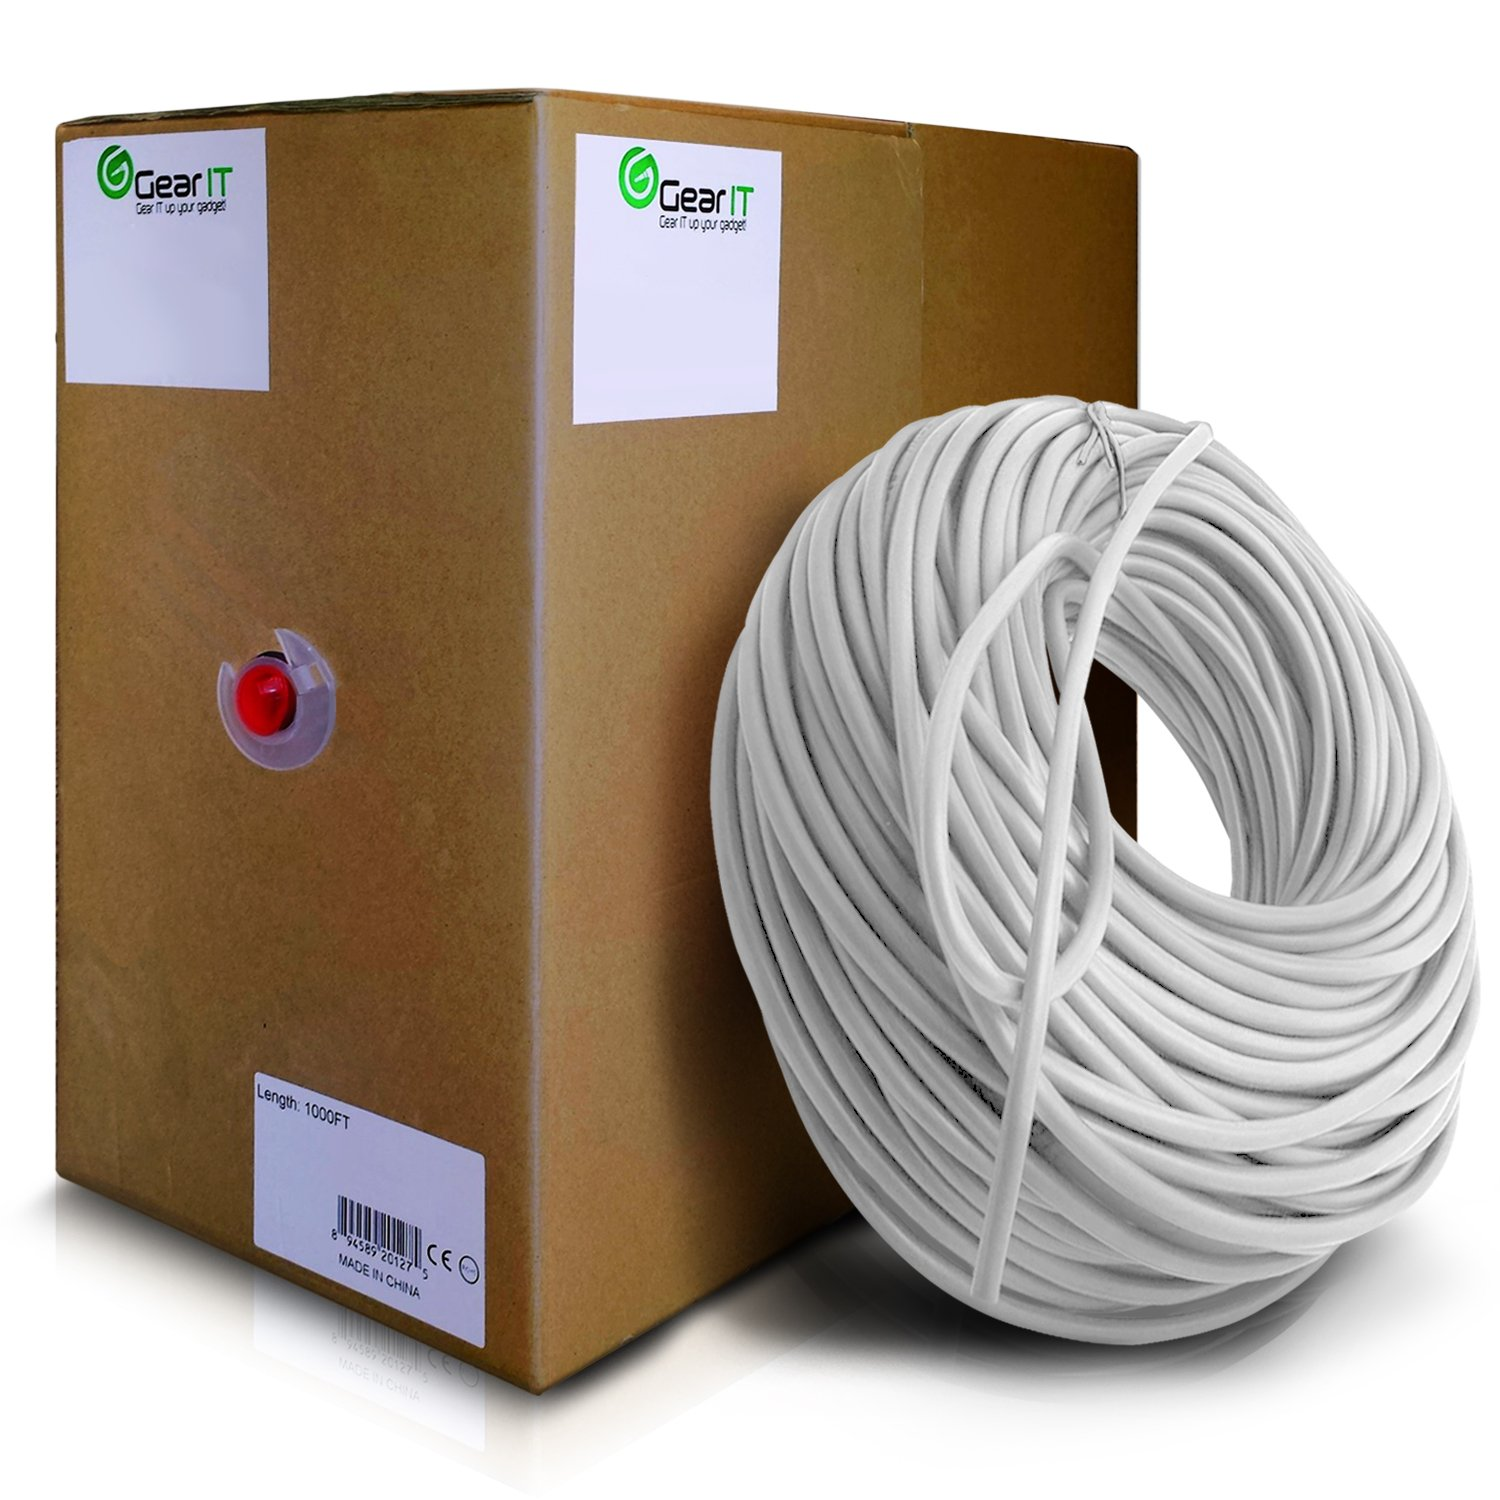 GearIT 1000 Feet Bulk Cat6 Ethernet Cable - Cat 6e 550Mhz 24AWG Full Copper Wire UTP Pull Box - In-Wall Rated (CM) Stranded Cat6, White by Little Trees